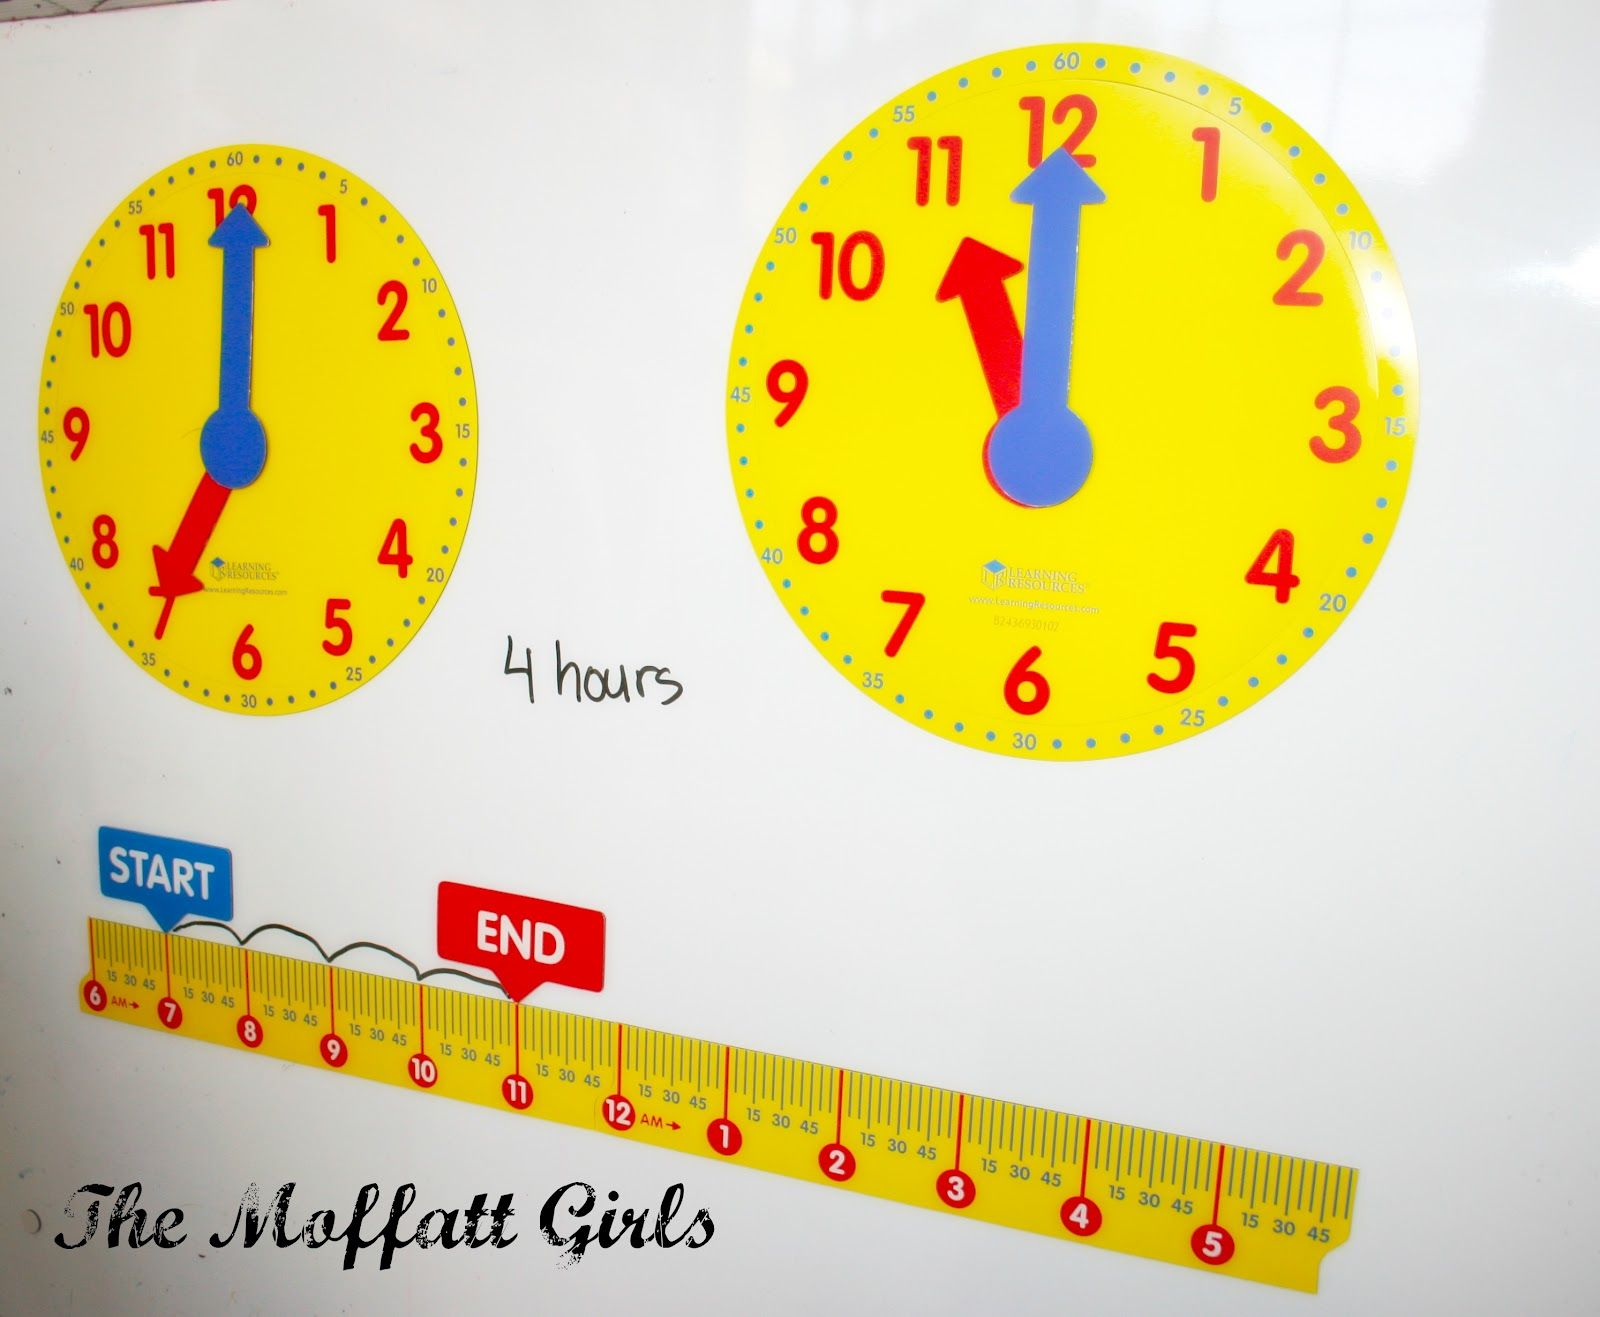 The Moffatt Girls Magnetic Elapsed Time Set Review And Giveaway